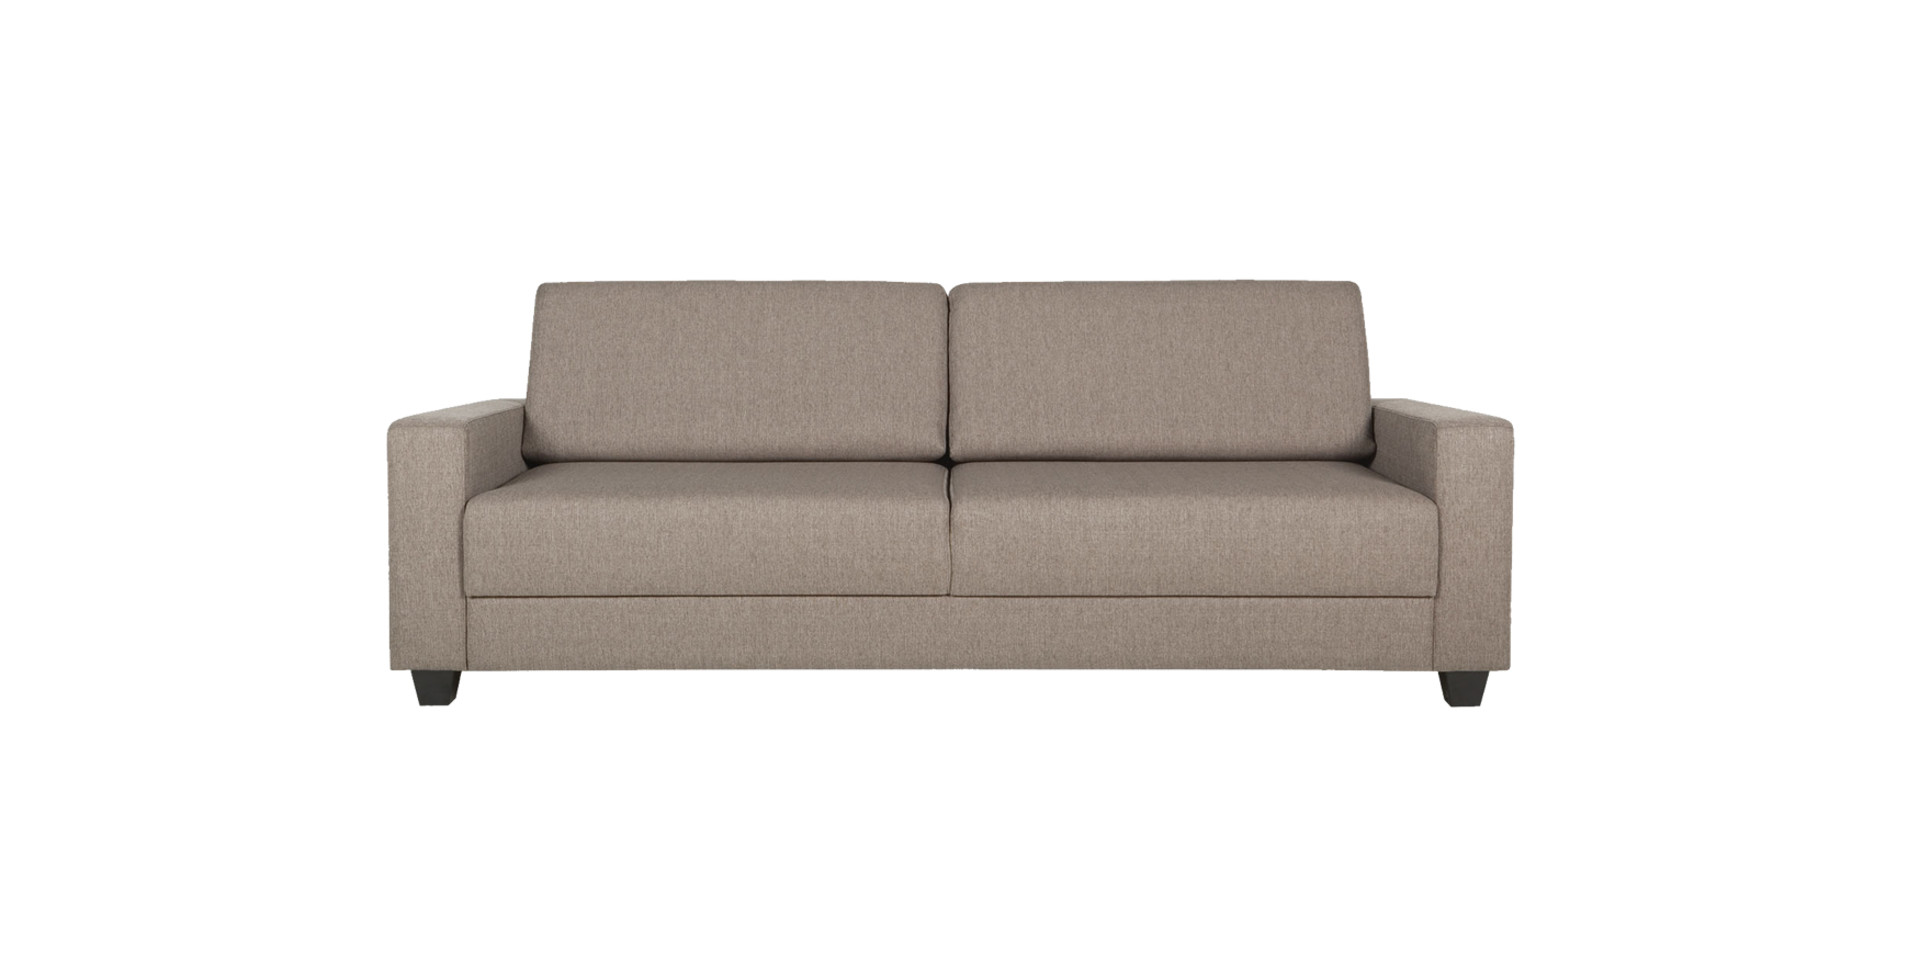 sits-bari-canape-convertible-sofa_bed_cedros3_light_brown_1